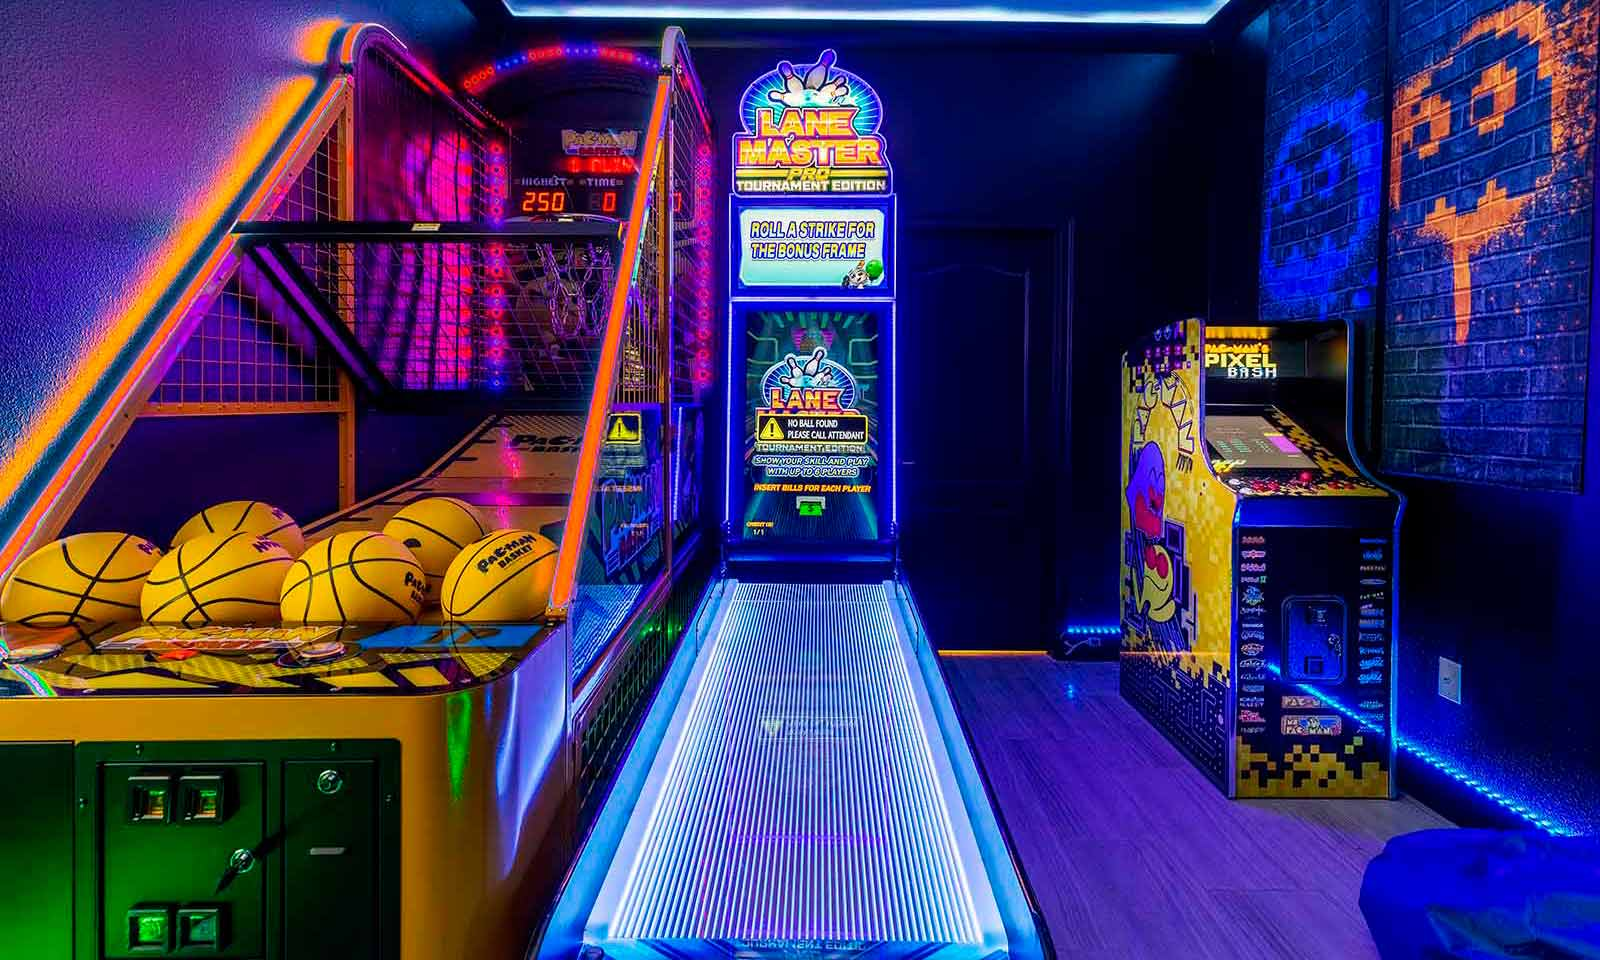 [amenities:Arcade-Games:3] Arcade Games